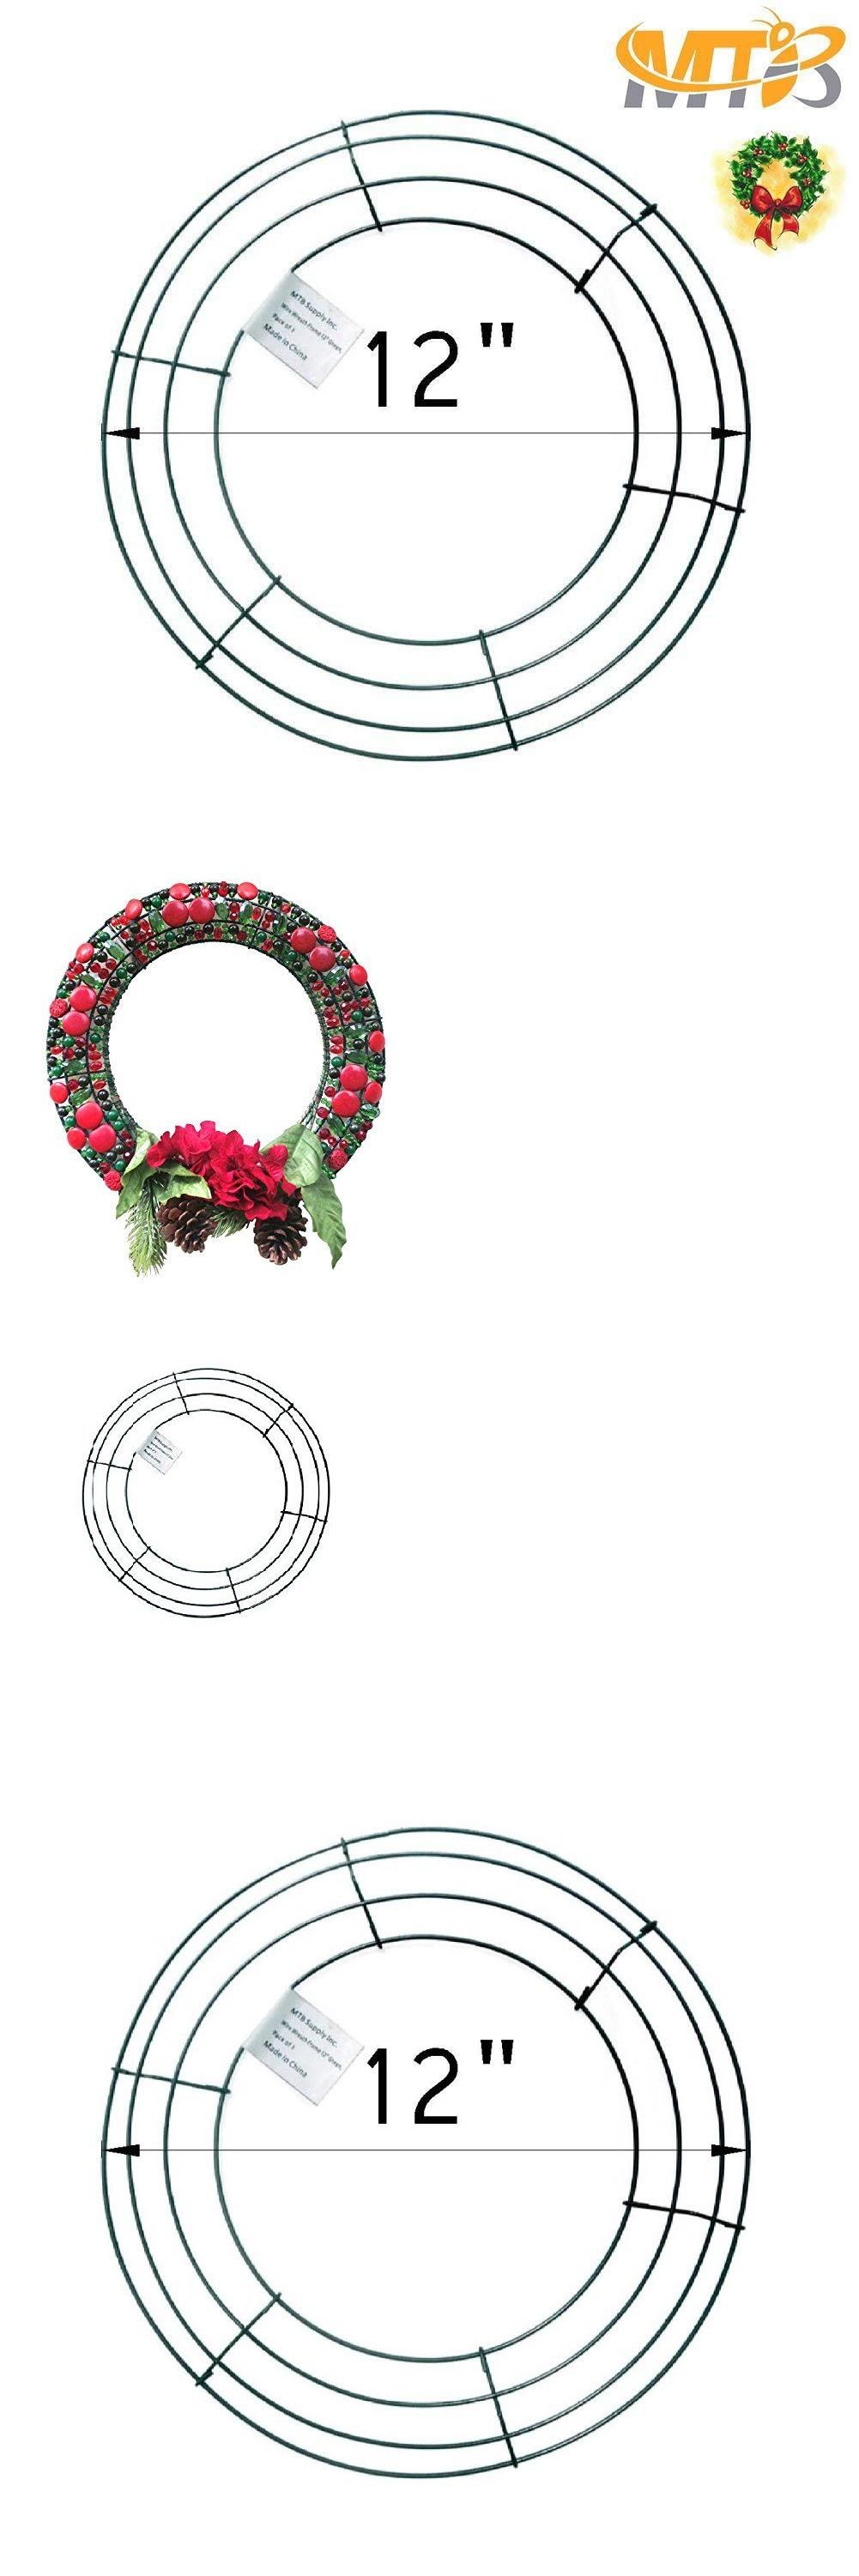 Floral Forms Bases And Frames 16498 Mtb Wire Wreath Frame 12 Inch Green Pack Of 1 Pack Of 5 Pack Of 10 Buy It Now Only Wire Wreath Frame Frame Wreaths